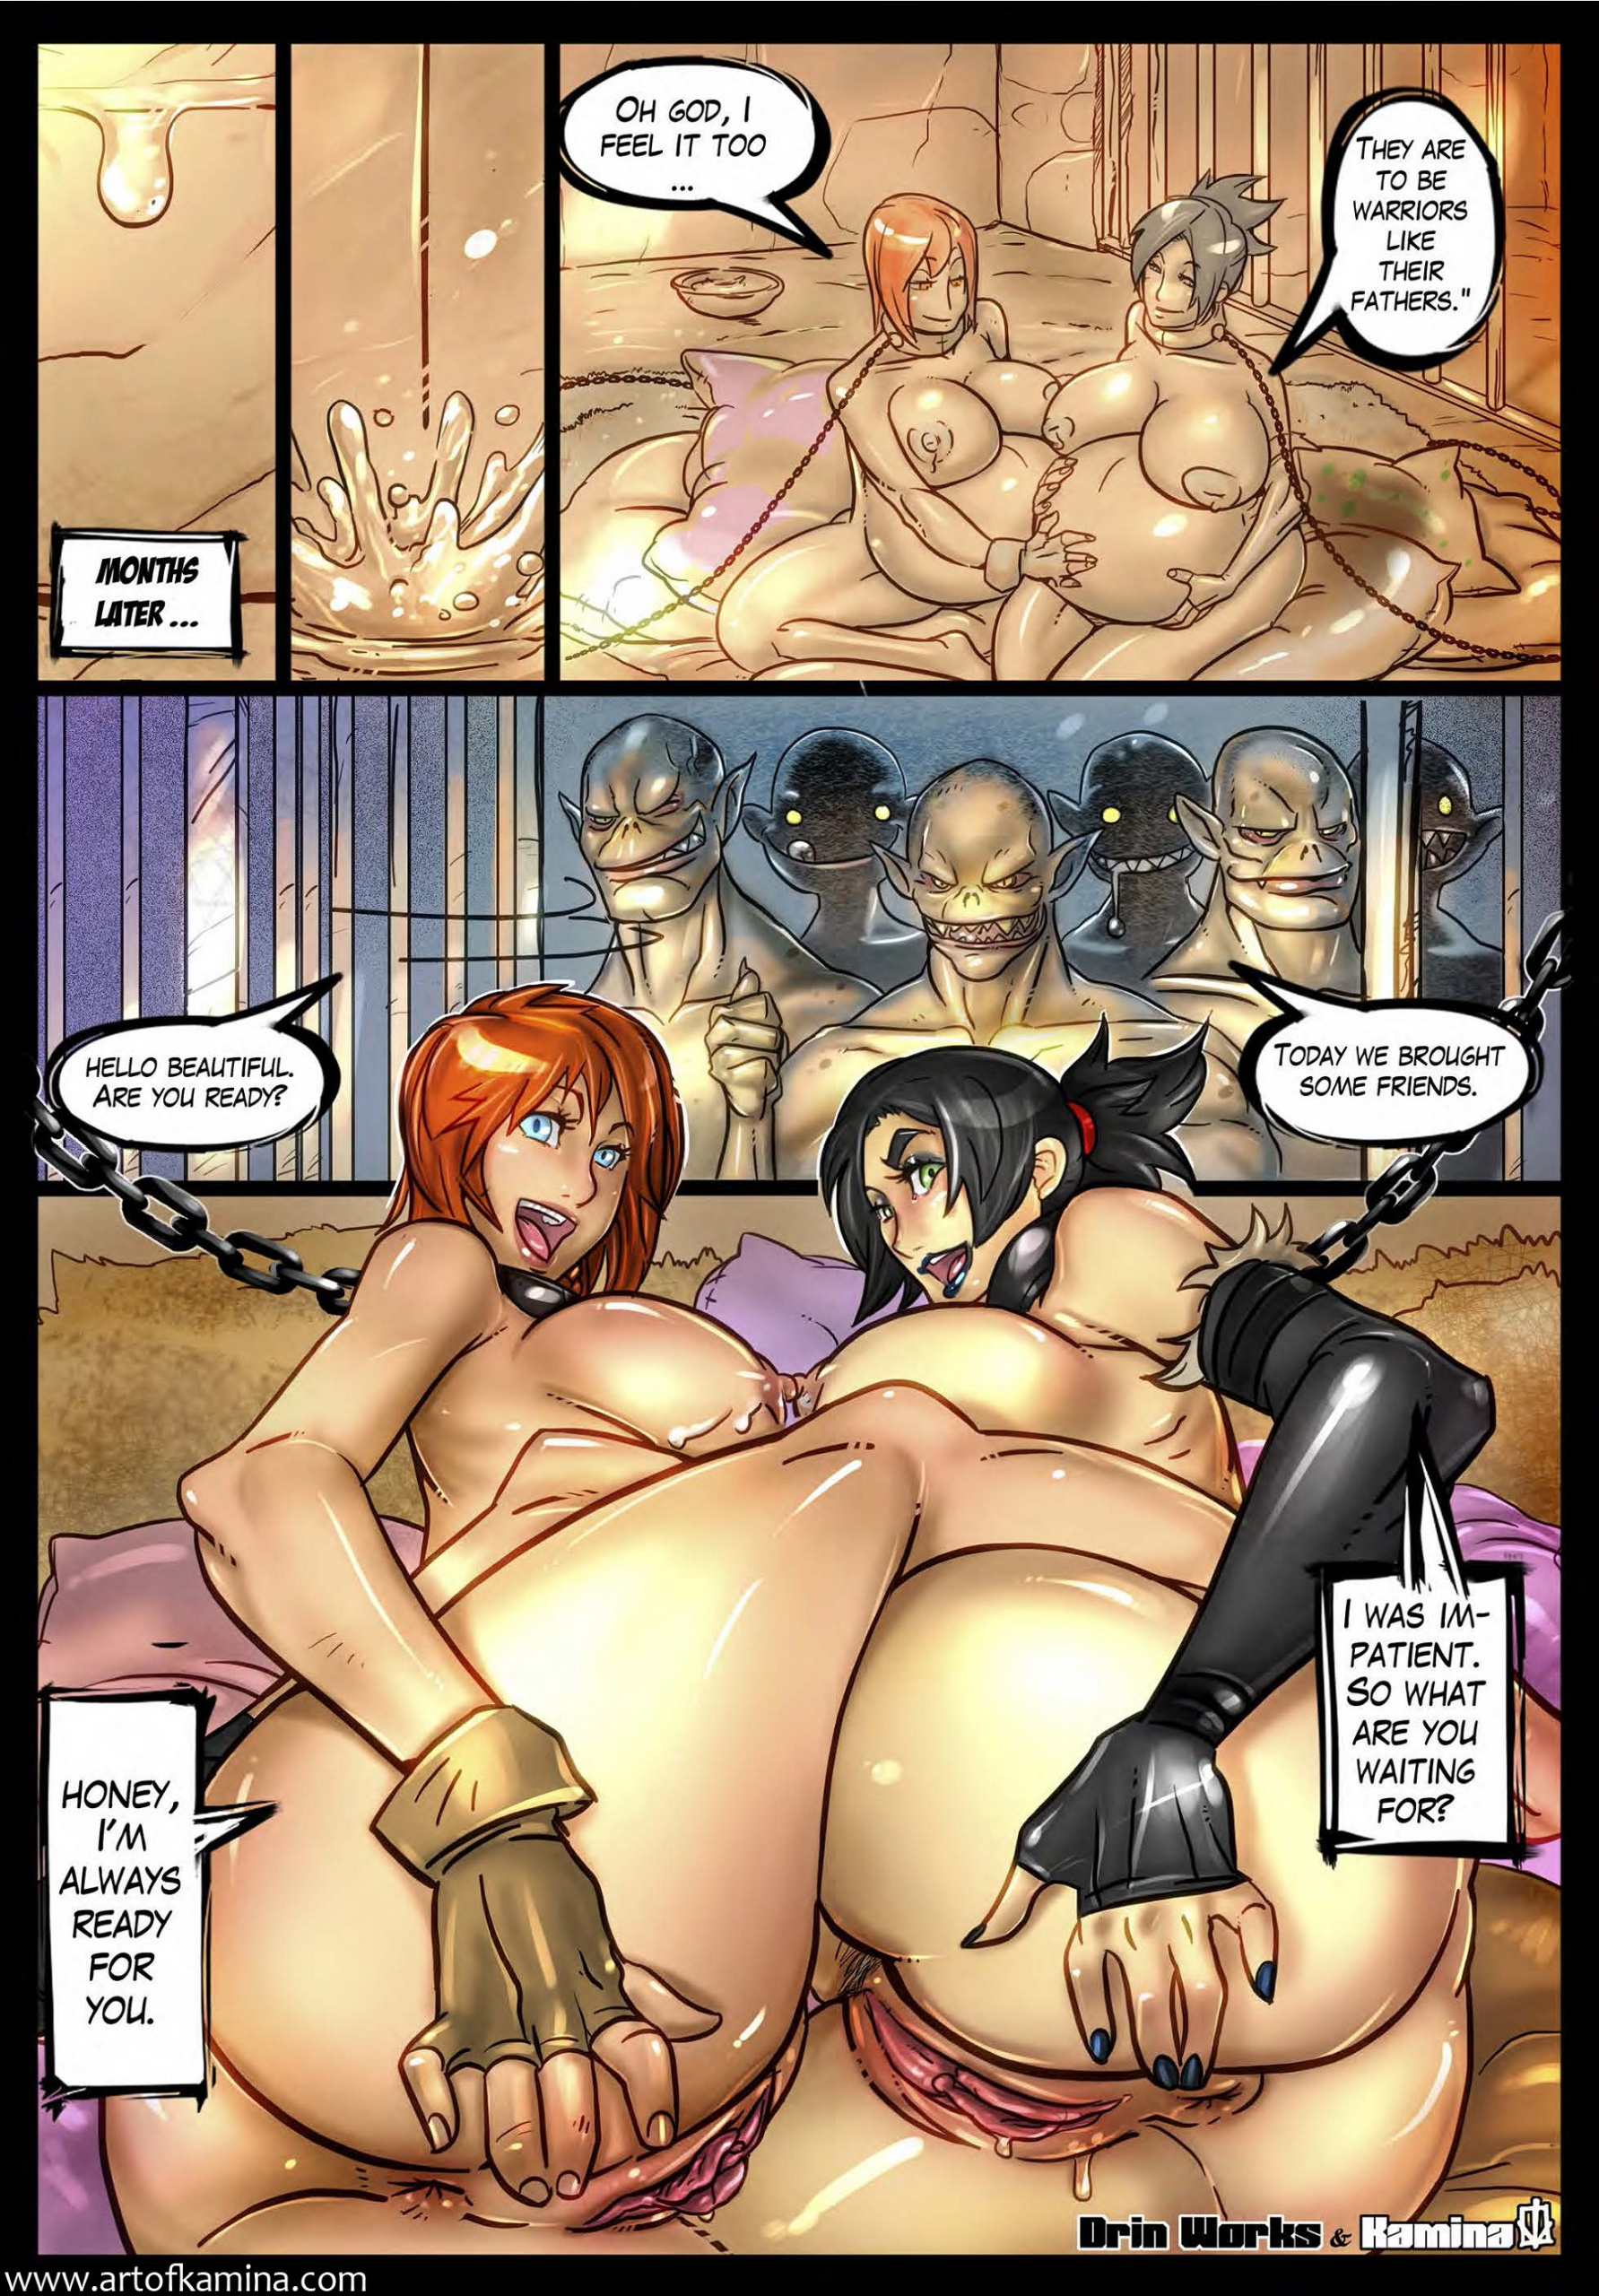 Dragon Age X Origins porn comics Oral sex, Anal Sex, BDSM, Big Tits, Blowjob, Creampie, Cum Shots, Cum Swallow, Deepthroat, Domination, Double Penetration, Group Sex, Monster Girls, Pregnant, Sex and Magic, Straight, Submission, Tentacles, Titfuck, X-Ray